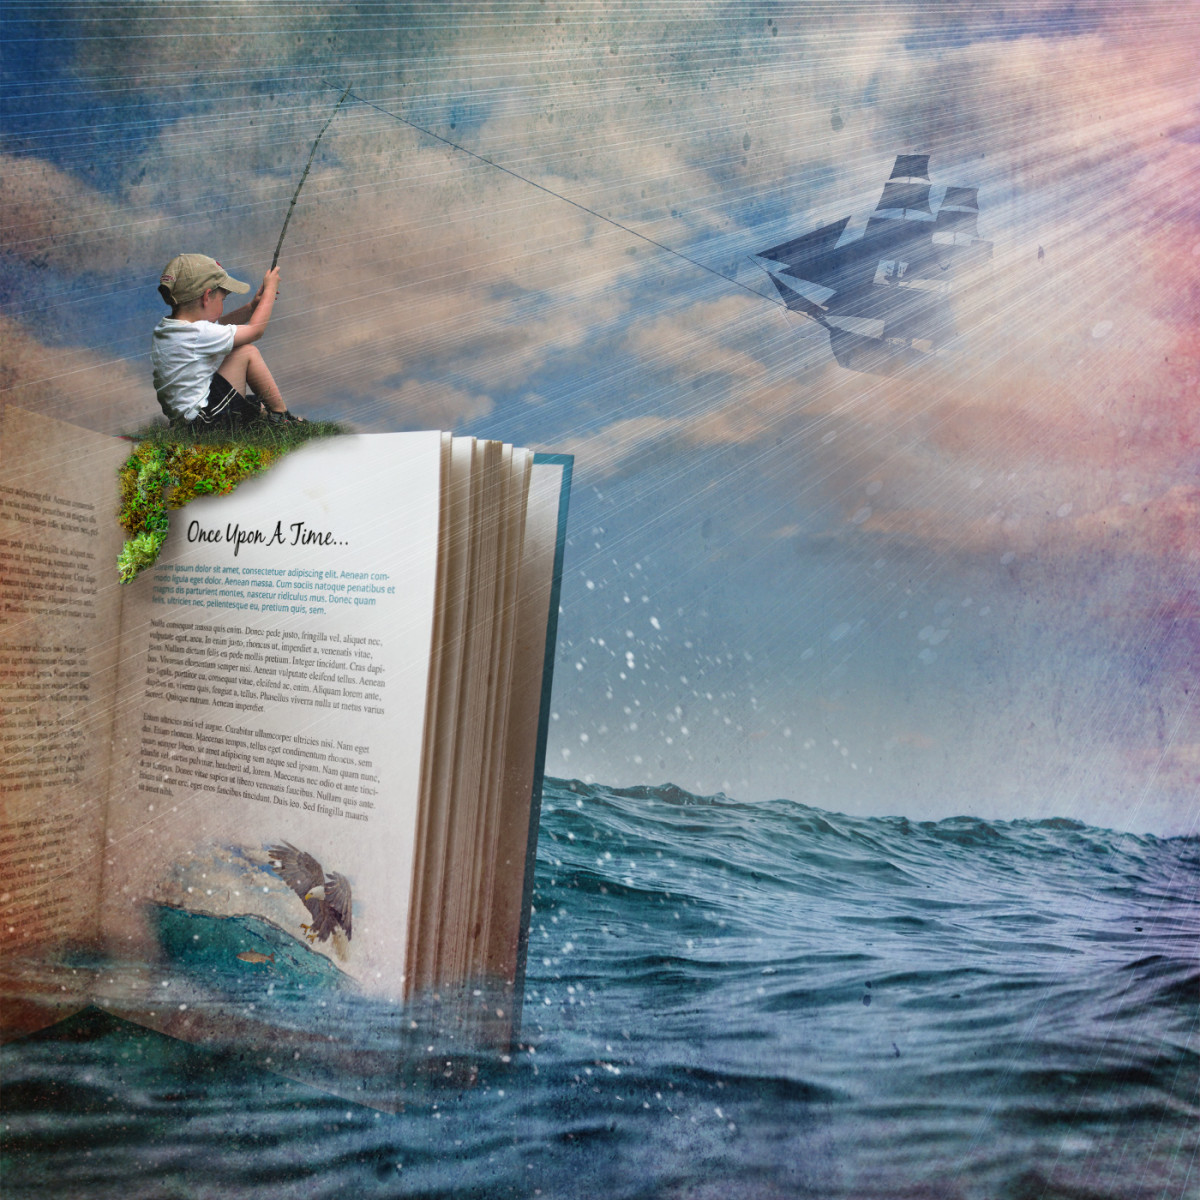 Fishing for adventure in a good book.